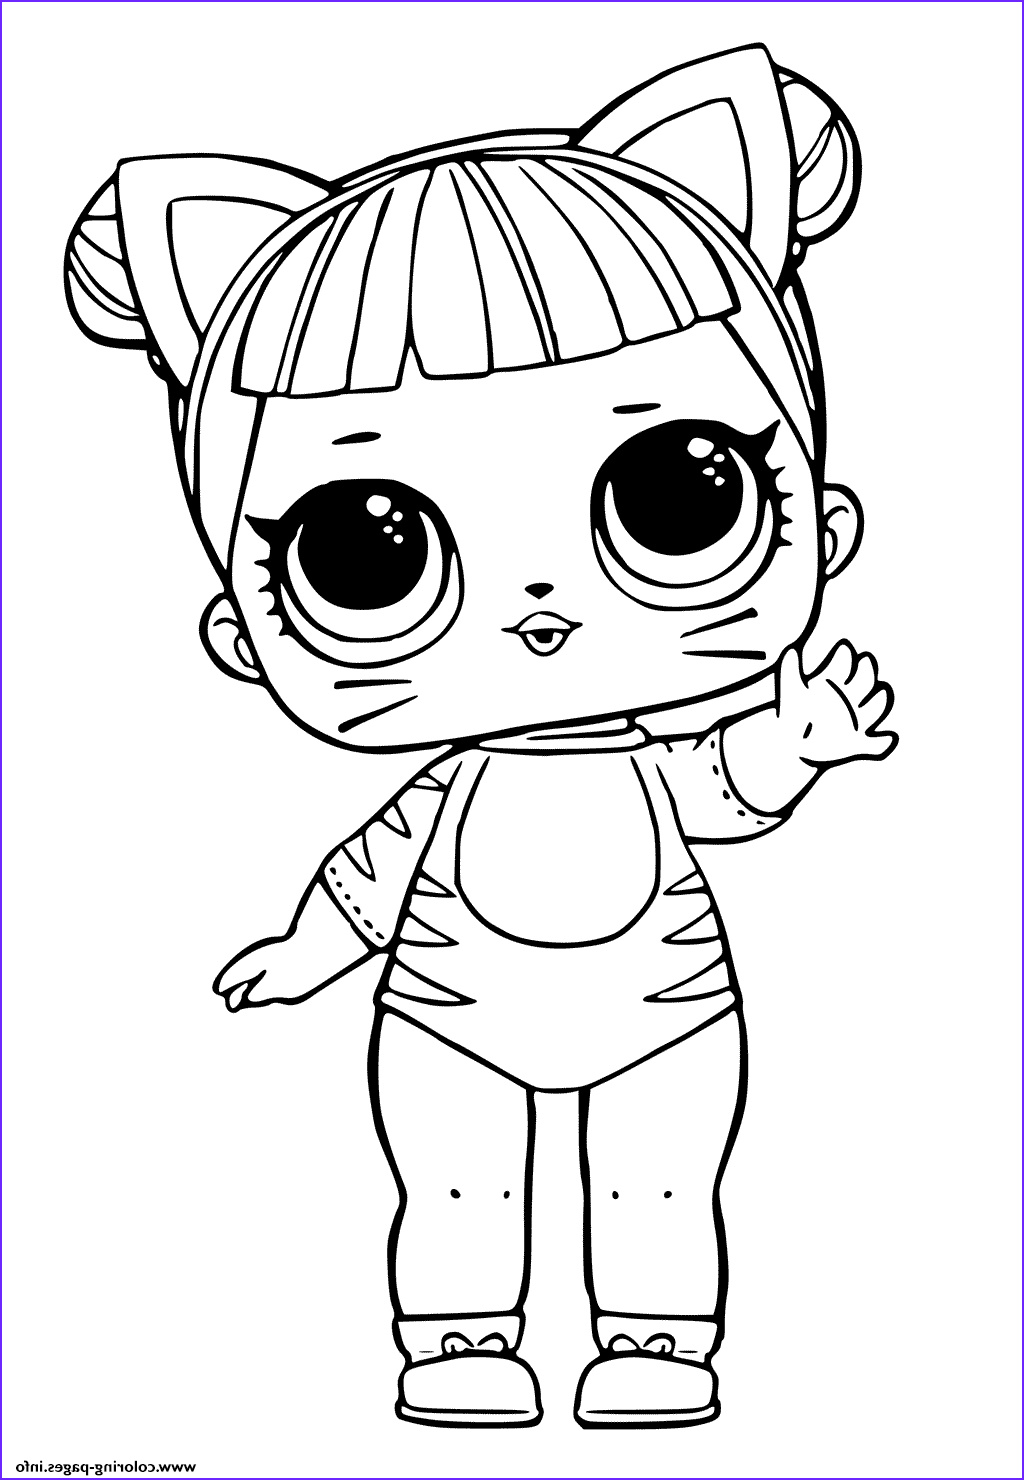 Cute Coloring Pages Beautiful Gallery Print Lol Doll Tiger Cat Cute Coloring Pages